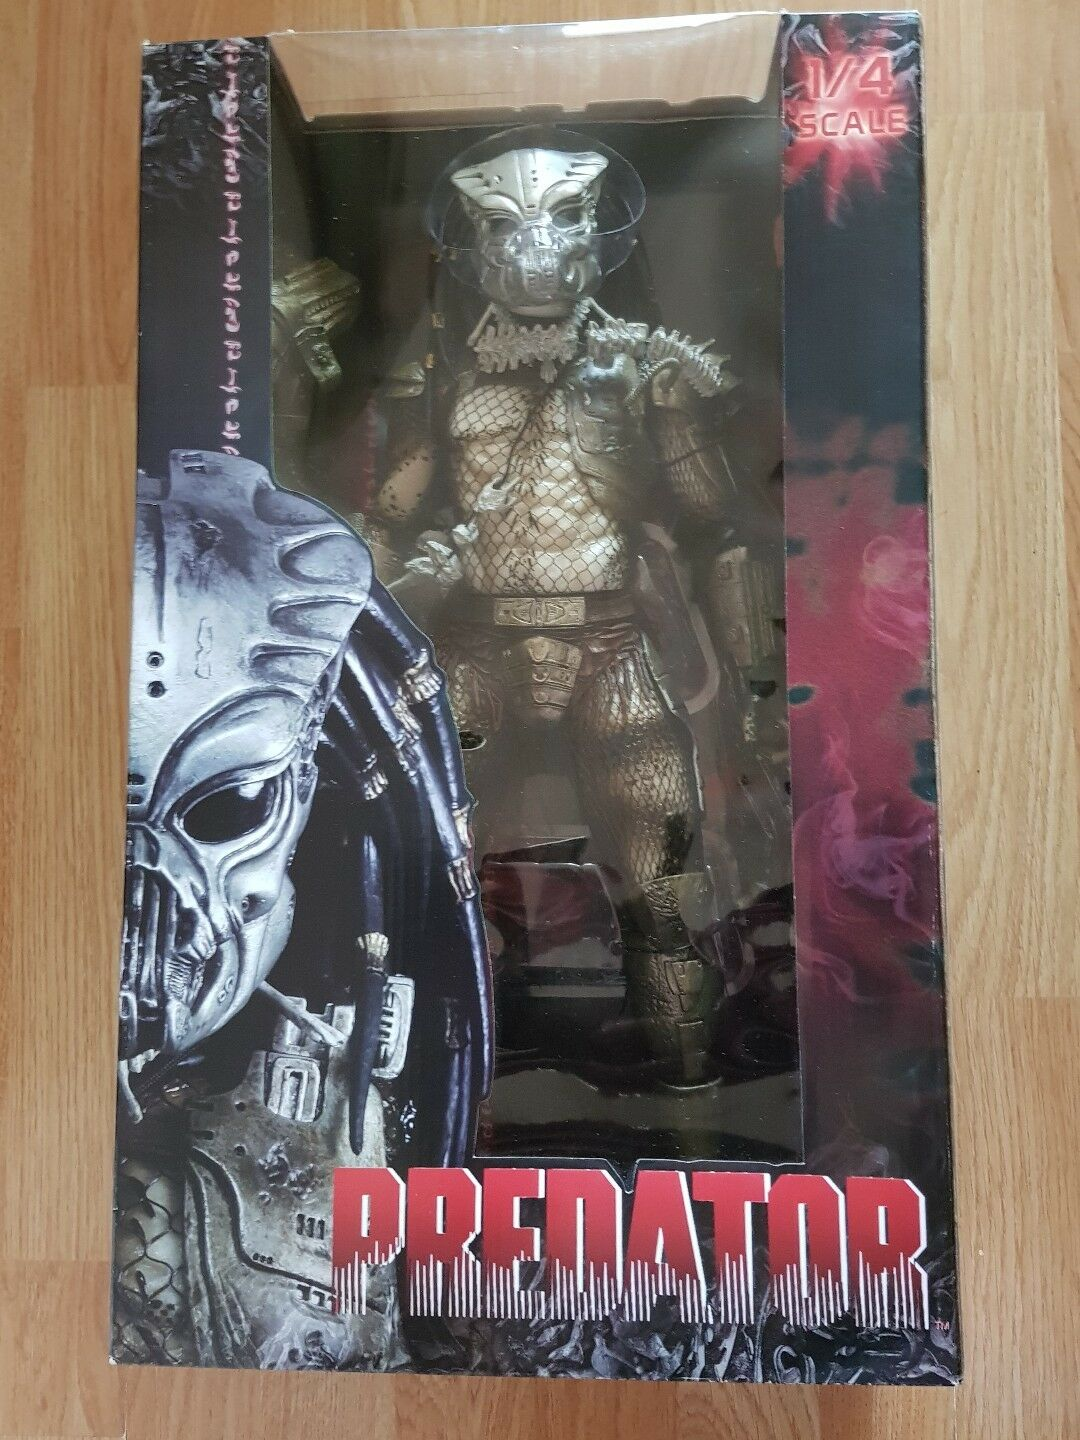 RARE NECA 1 4 Scale Action Figure GUARDIAN GORT PREDATOR LTD 5,000